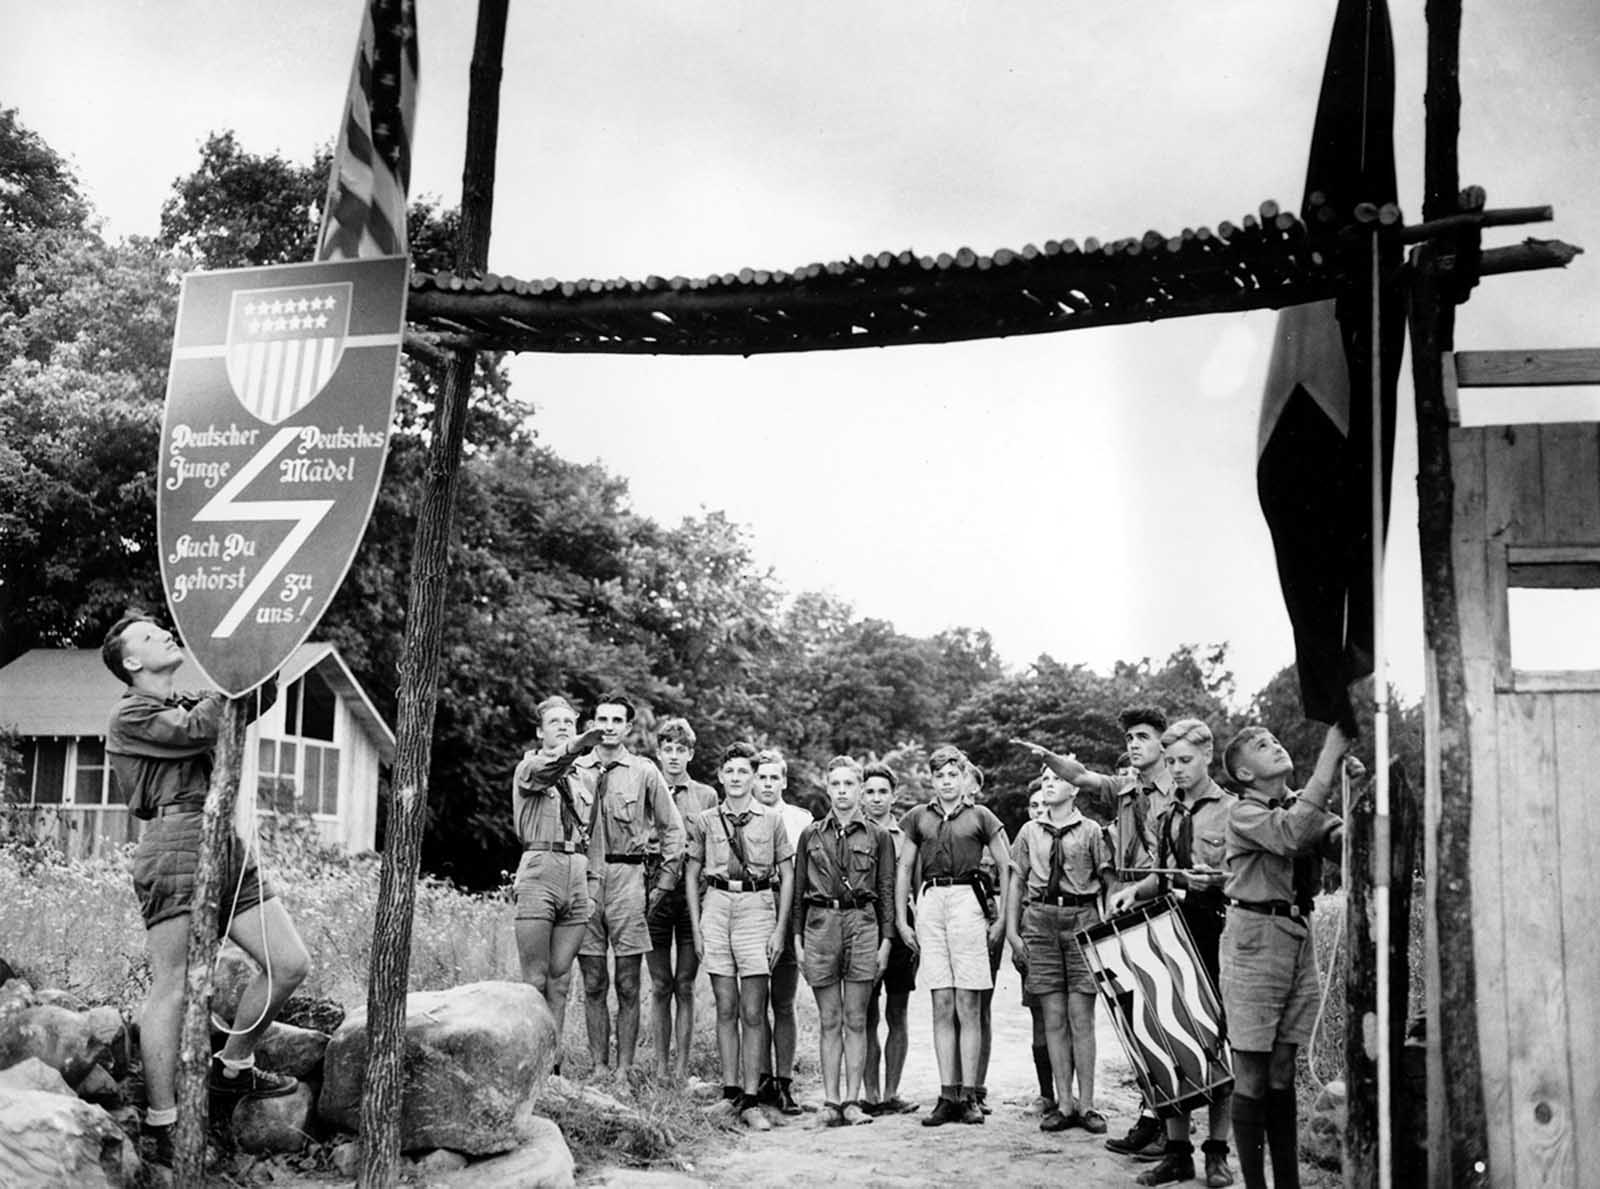 Youths at a German-American Bund camp stand at attention as the American flag and the German-American Youth Movement flag, right, are lowered in a ceremony at sundown in Andover, New Jersey, on July 21, 1937.